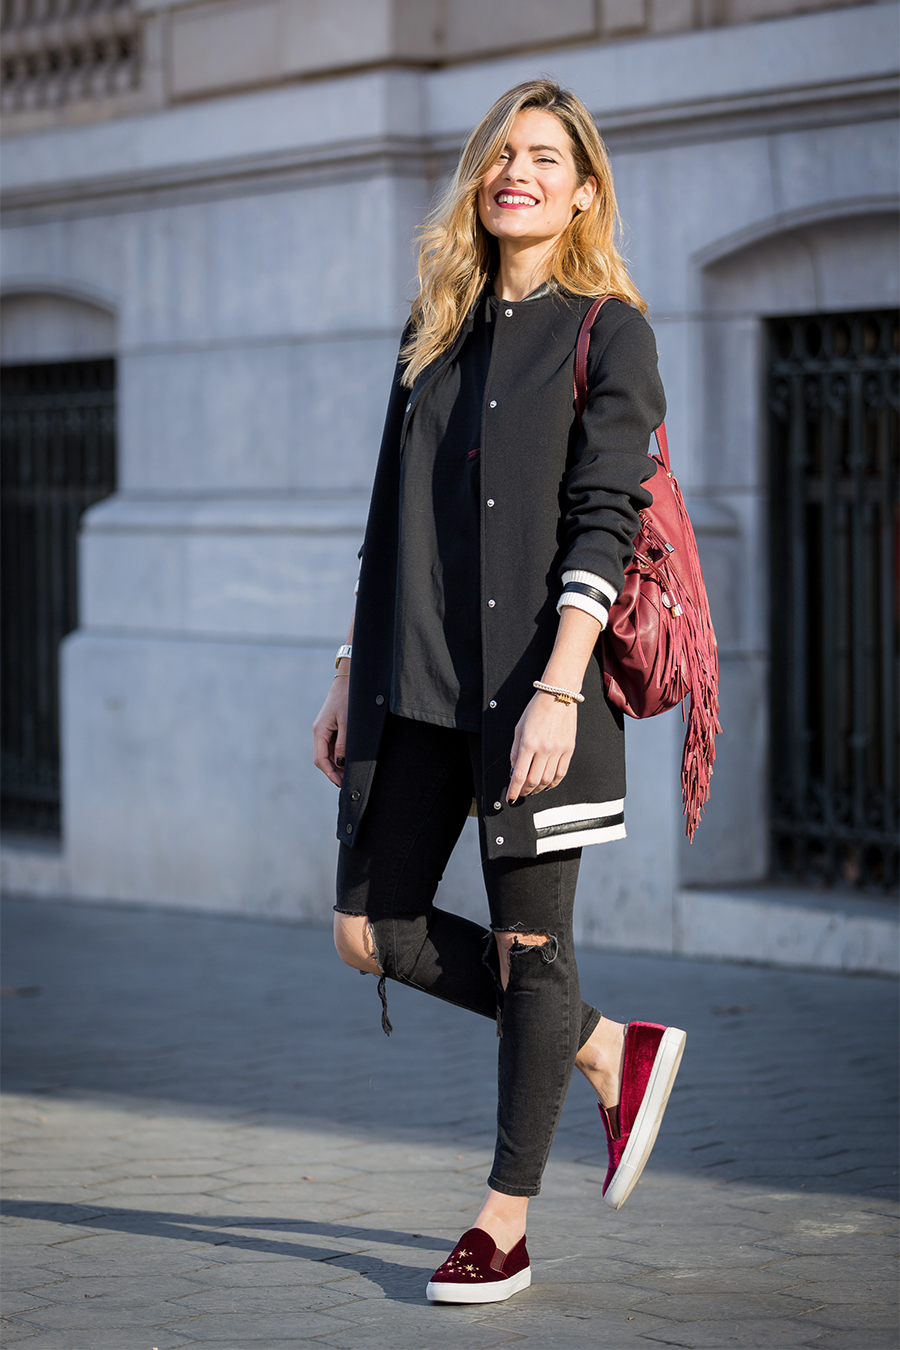 Del-toro-shoes-outfit_blac-outfit_Barcelona-street-style_casual-friday